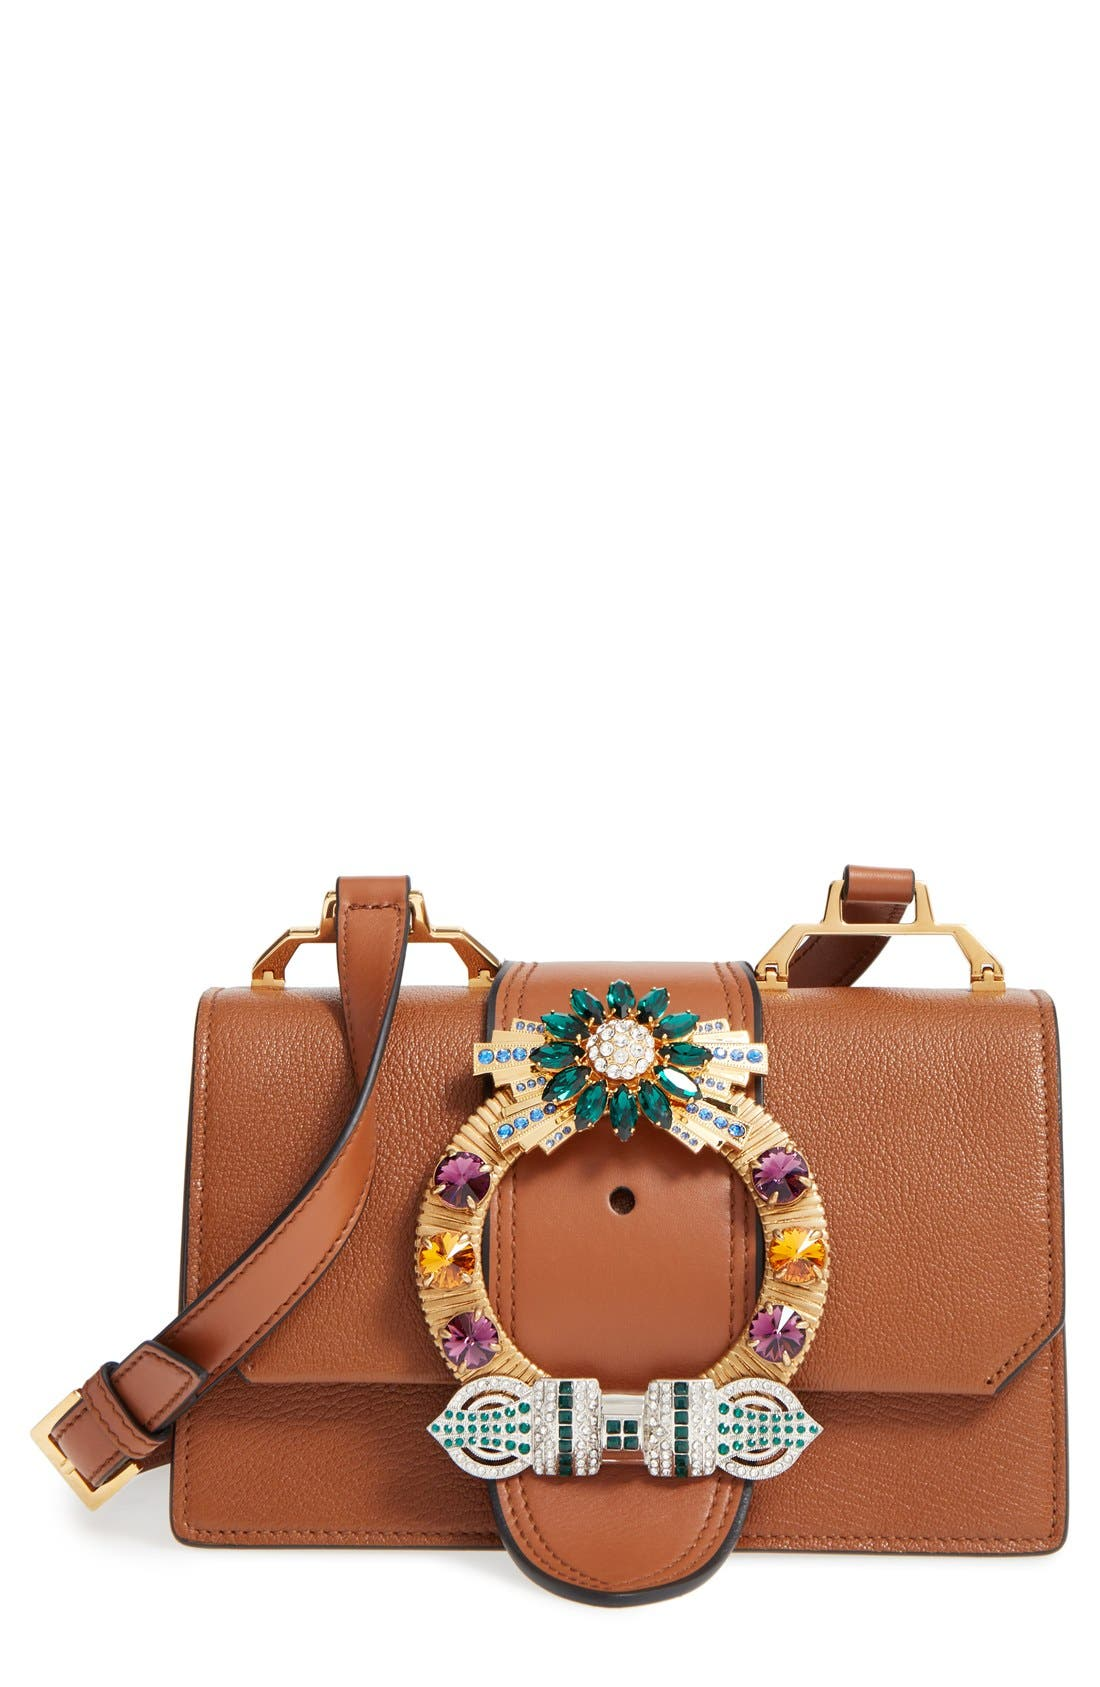 Miu Miu 'Small Madras' Crystal Embellished Leather Shoulder Bag